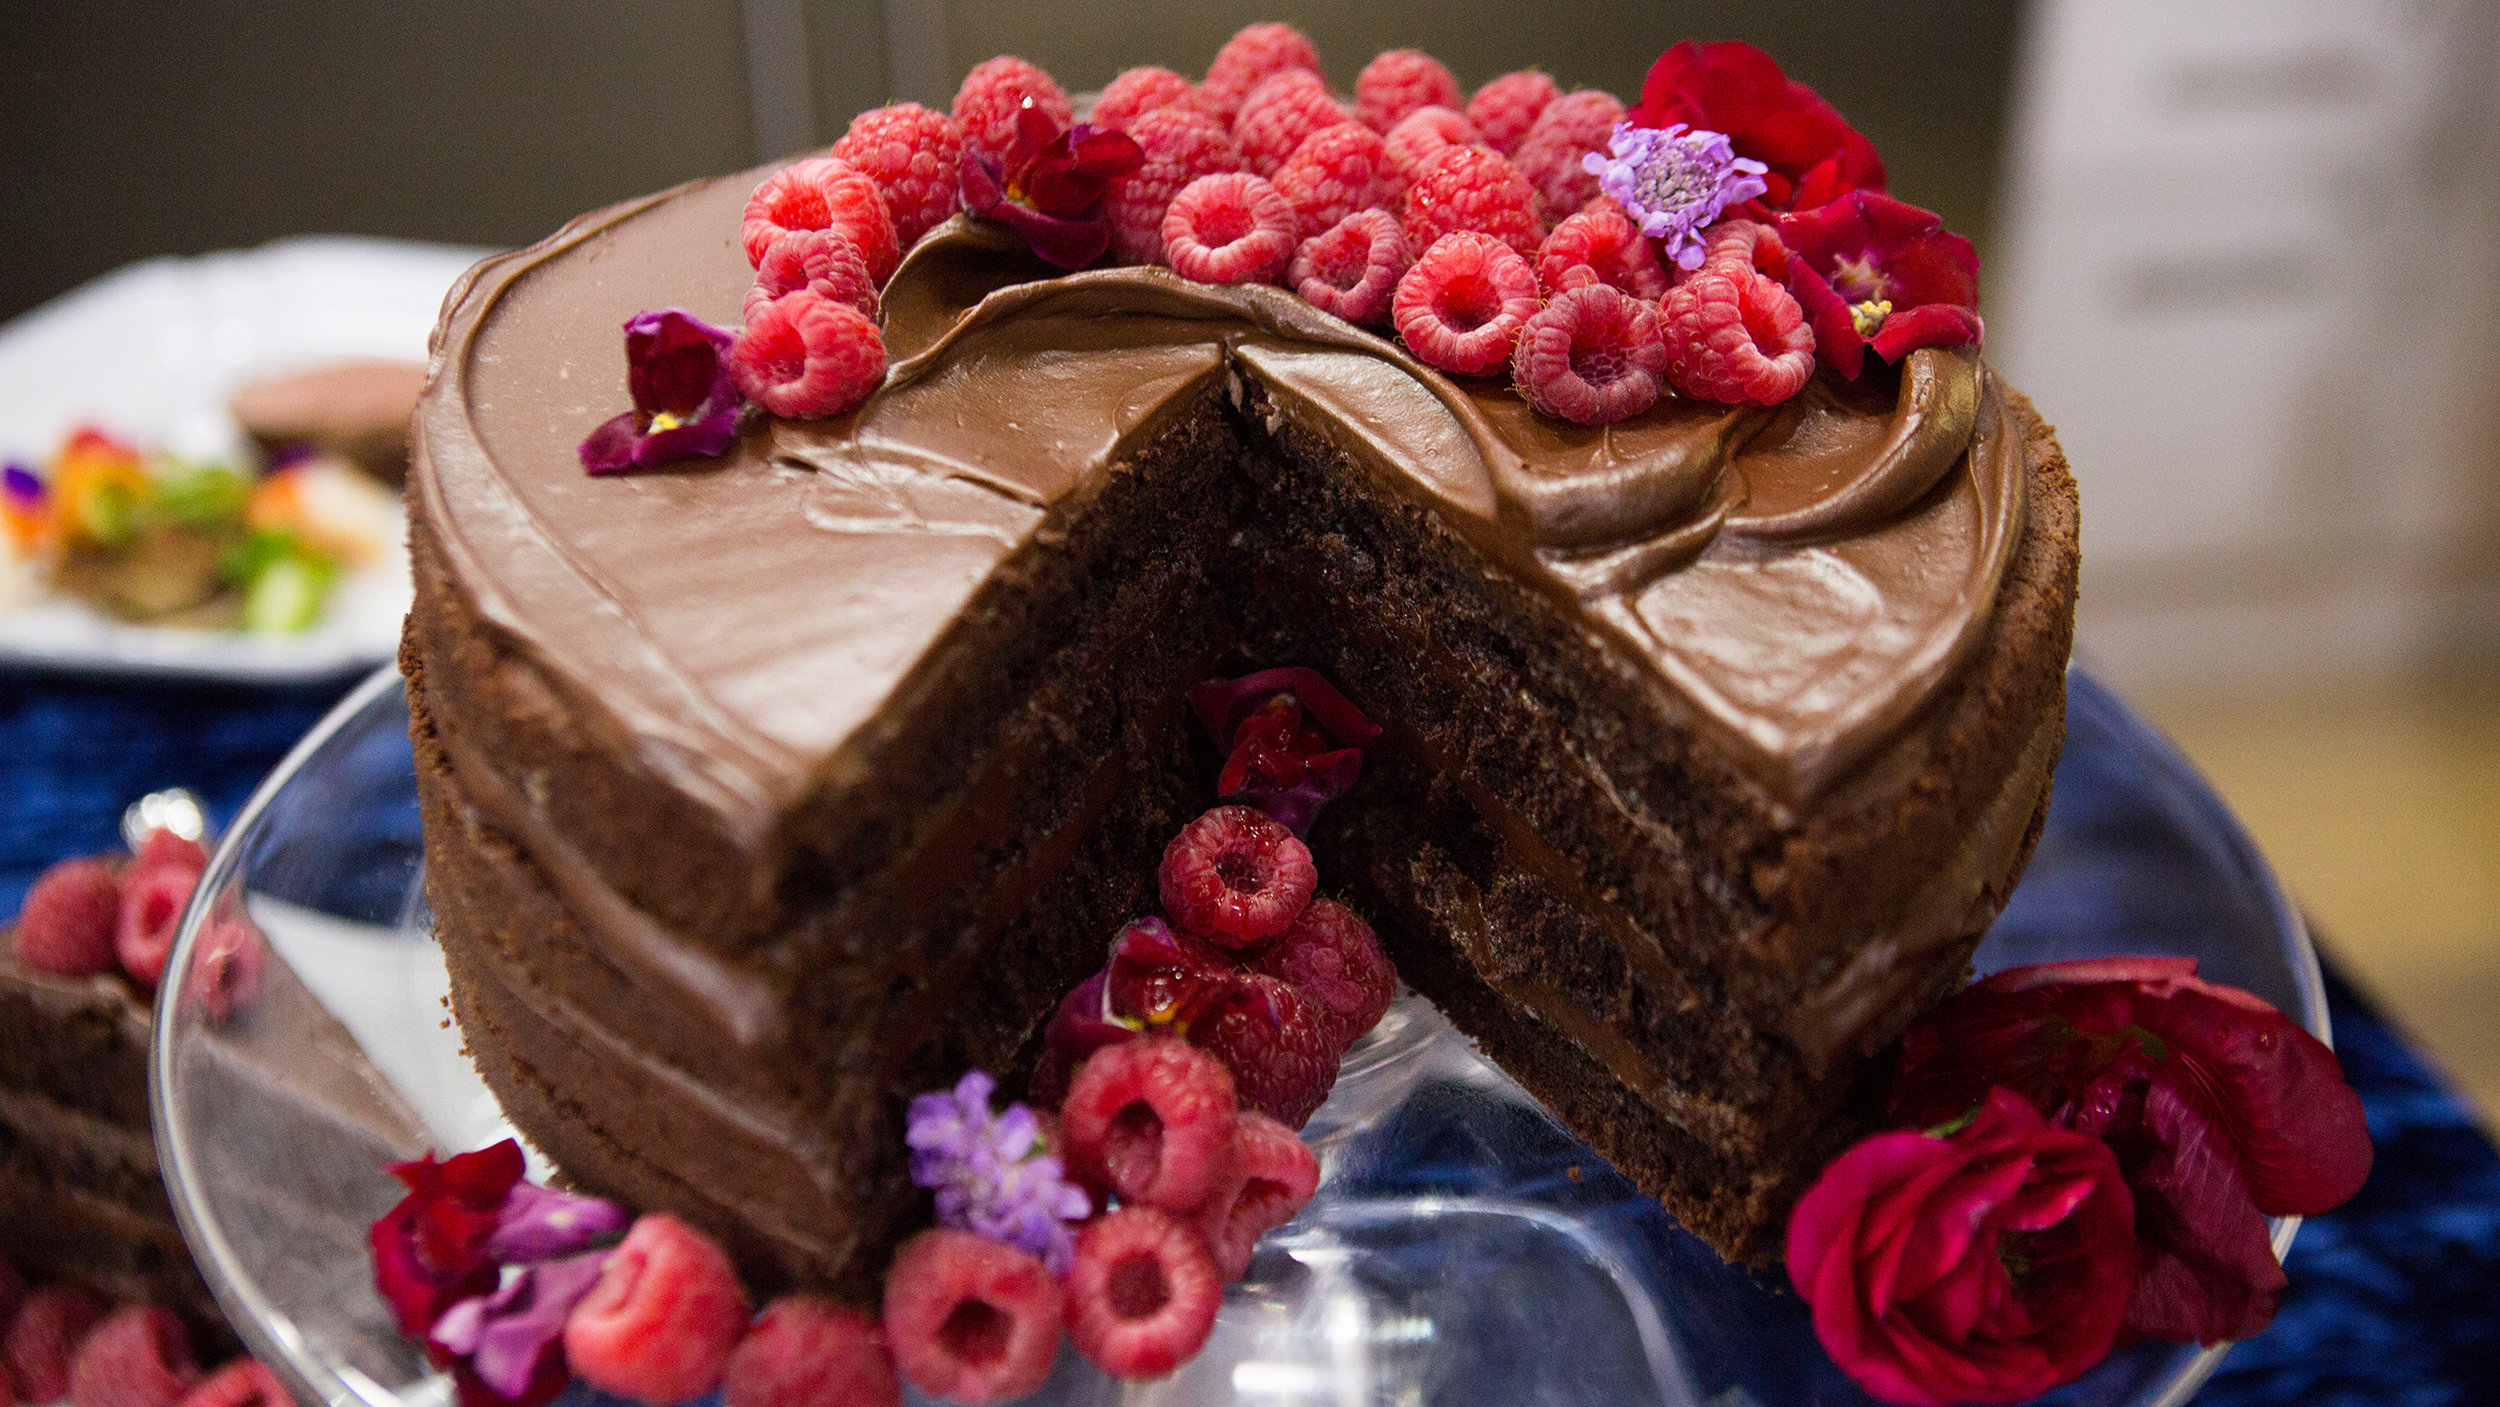 Chocolate Cake - TODAY.com